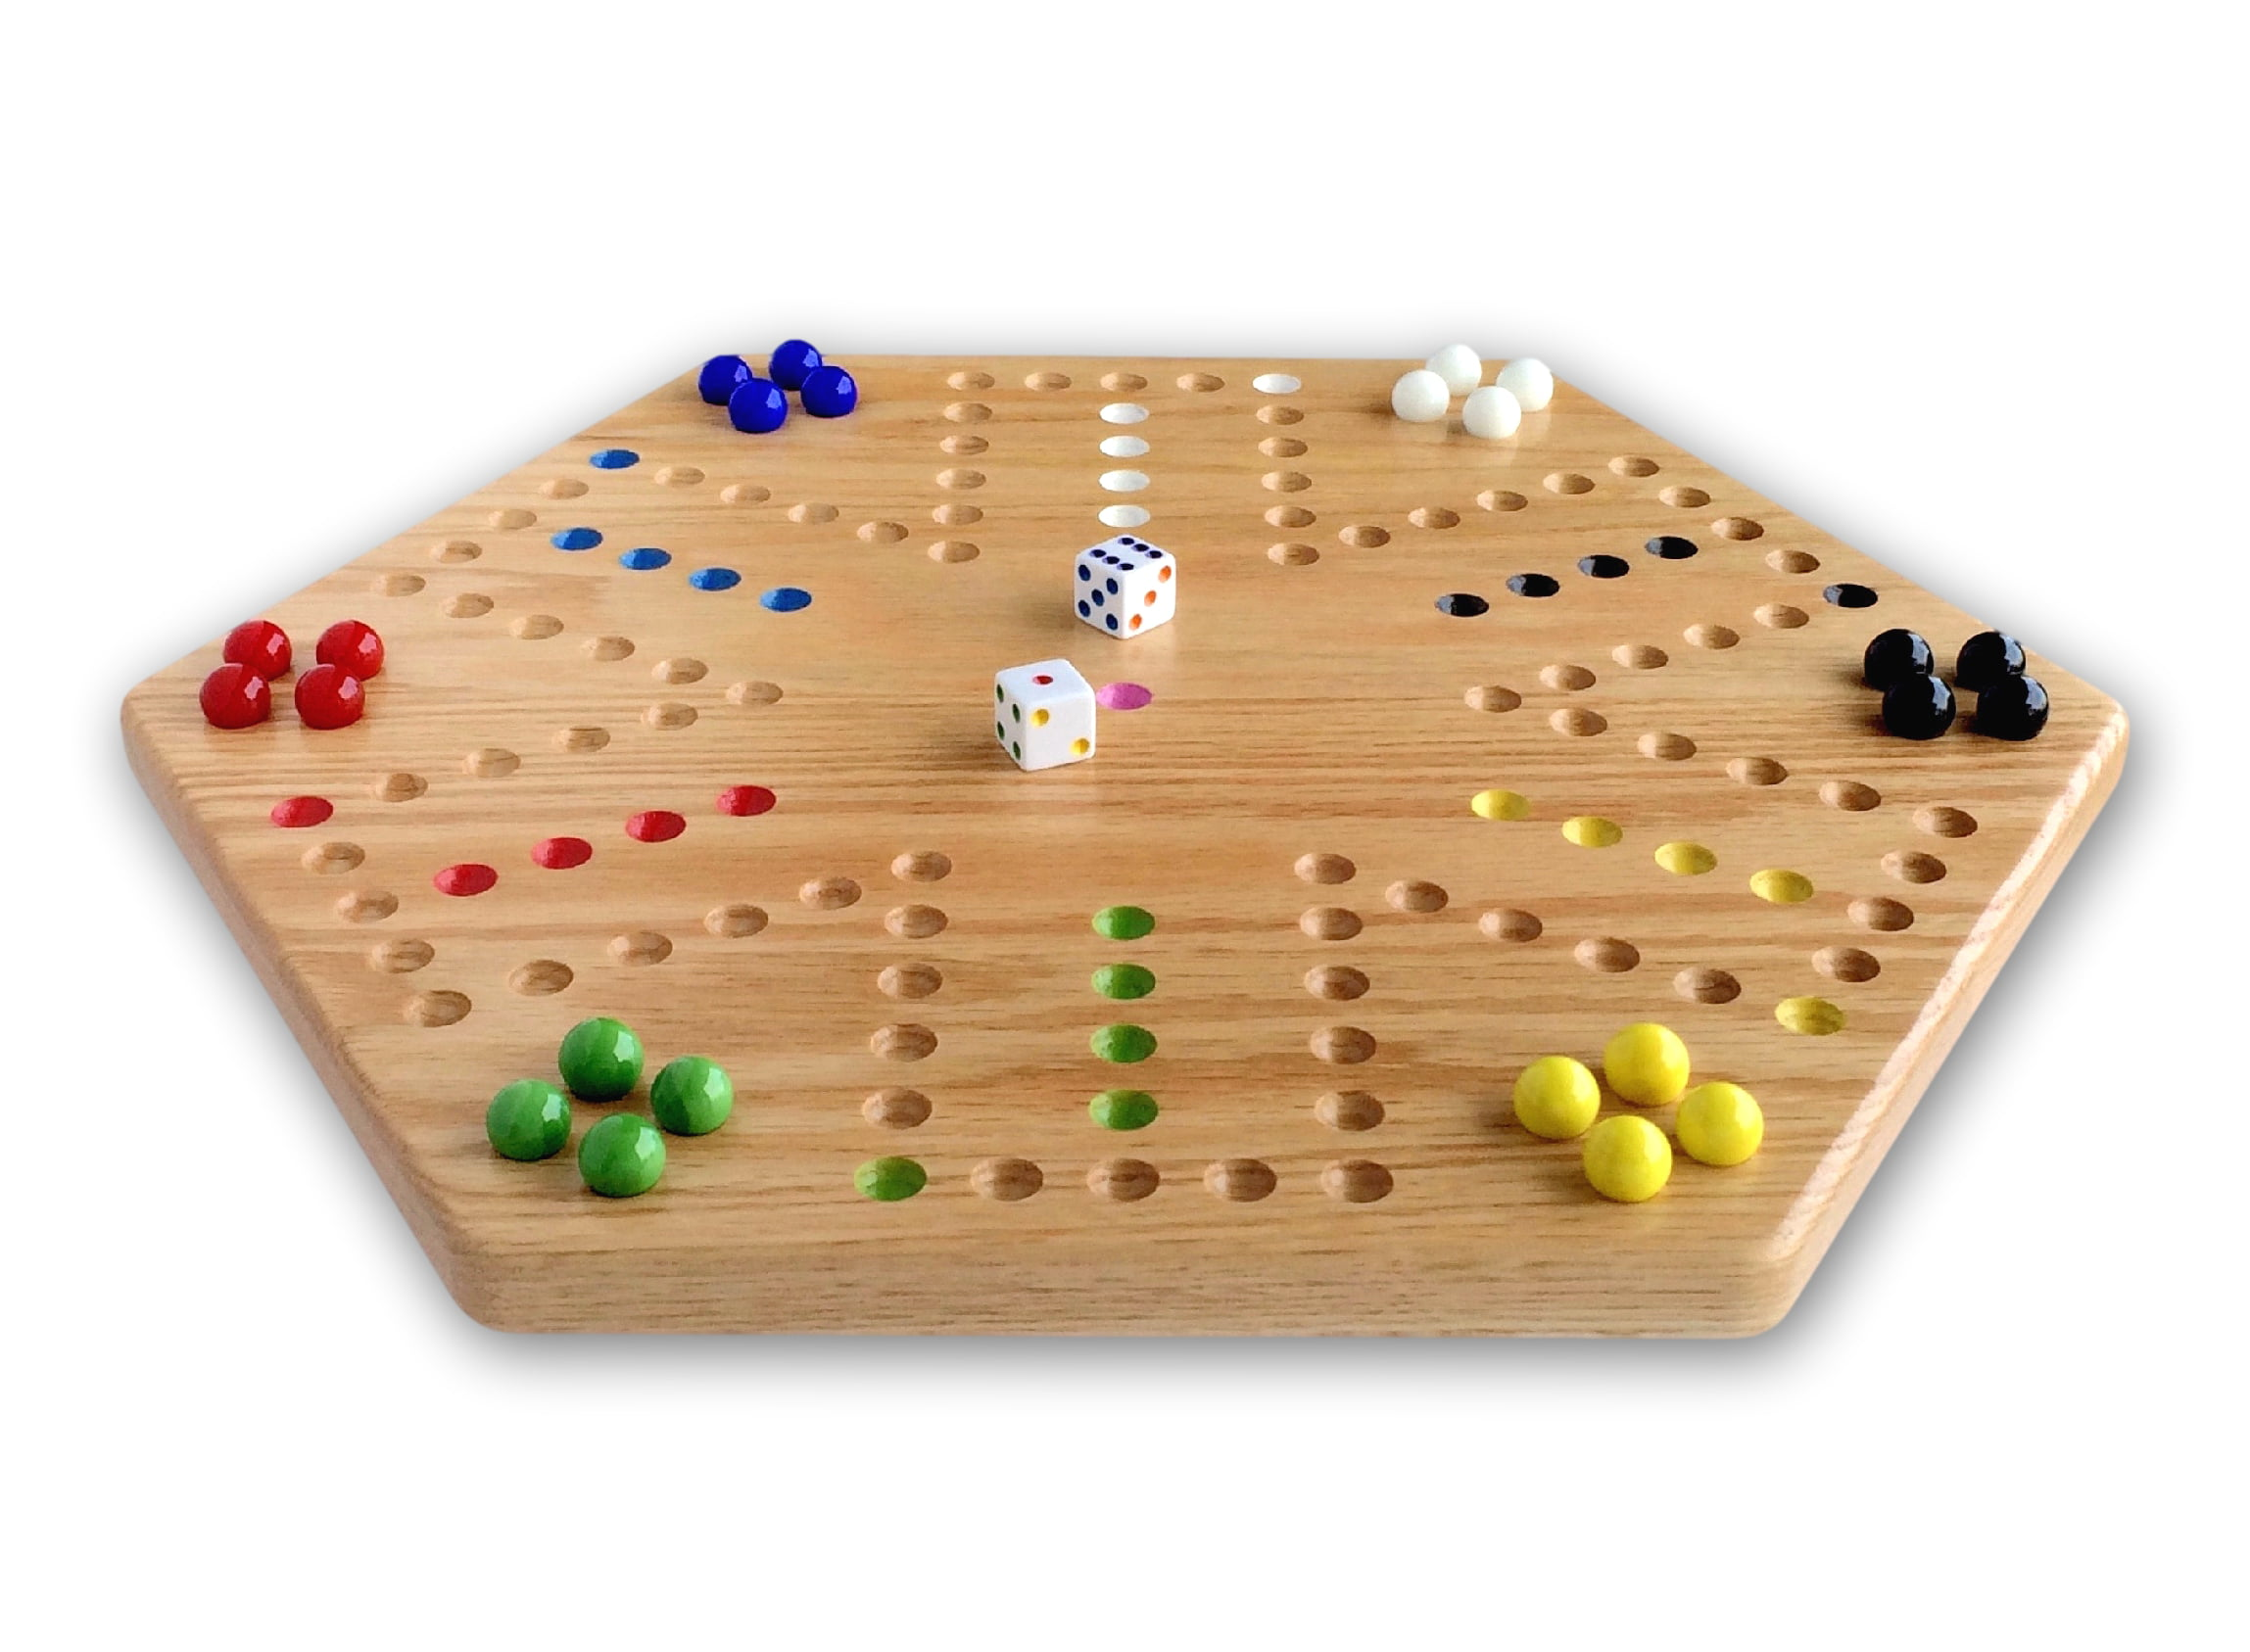 "AmishToyBox.com Oak Hand-Painted 16"" Wooden Aggravation Game Board, Double-Sided by Wengerd Wood"